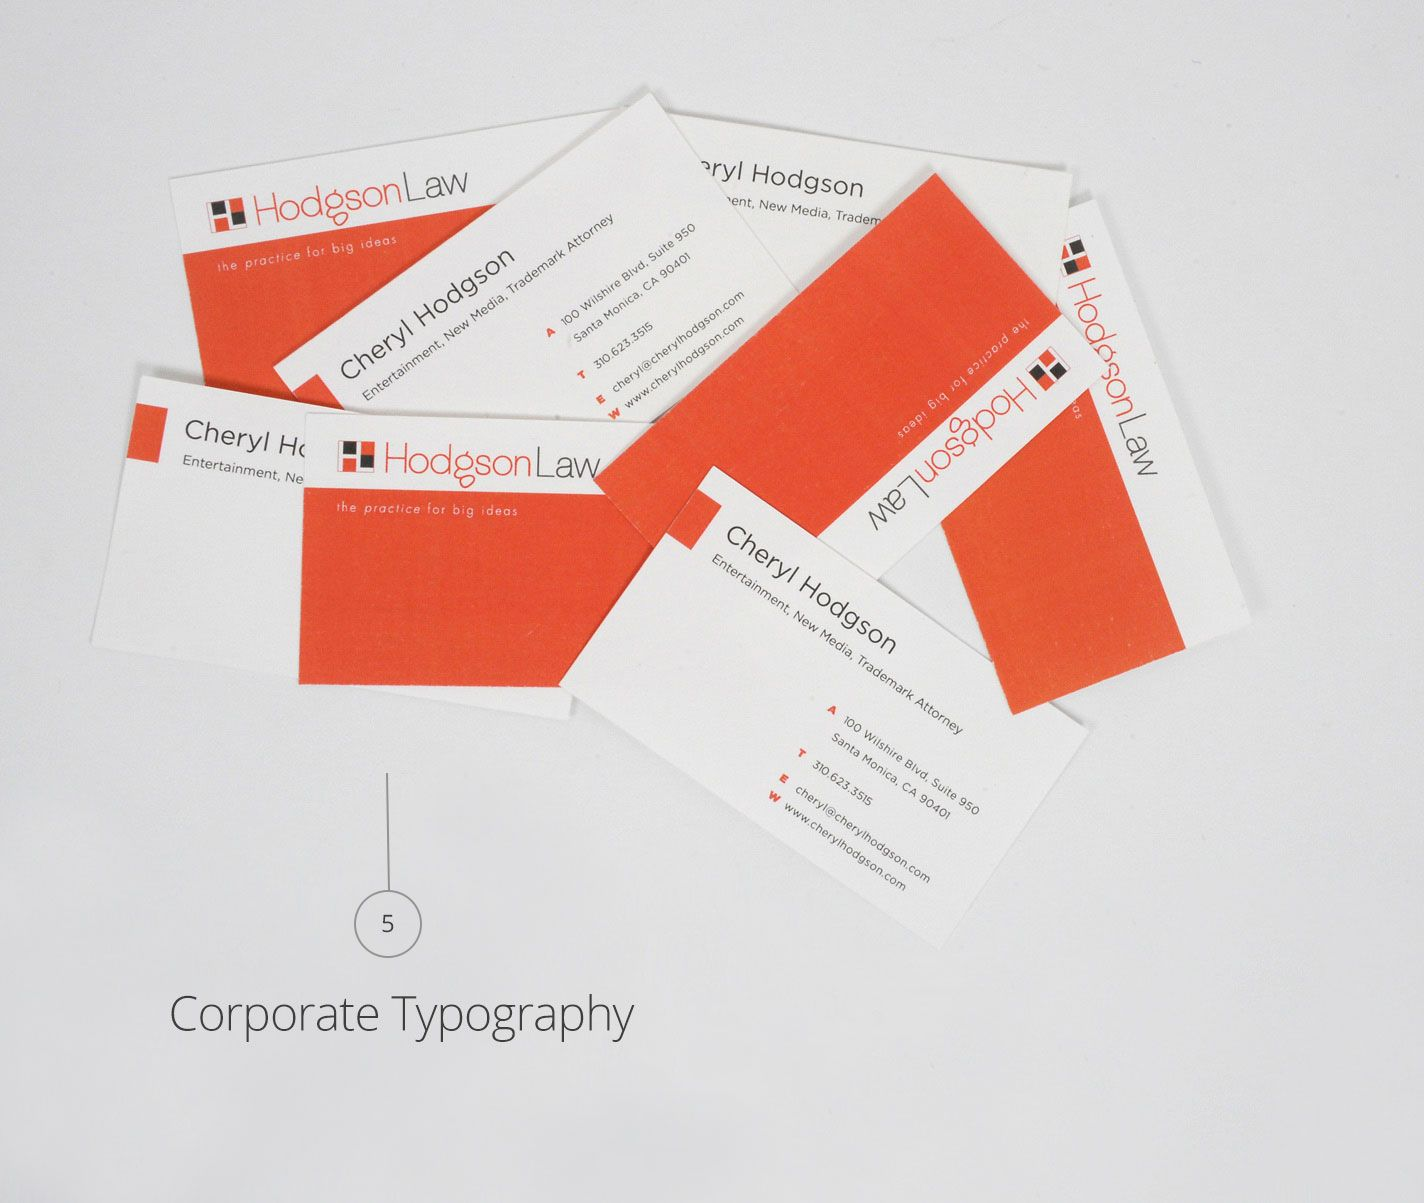 Law Firm - Business Card Design | Law Office Identity research ...